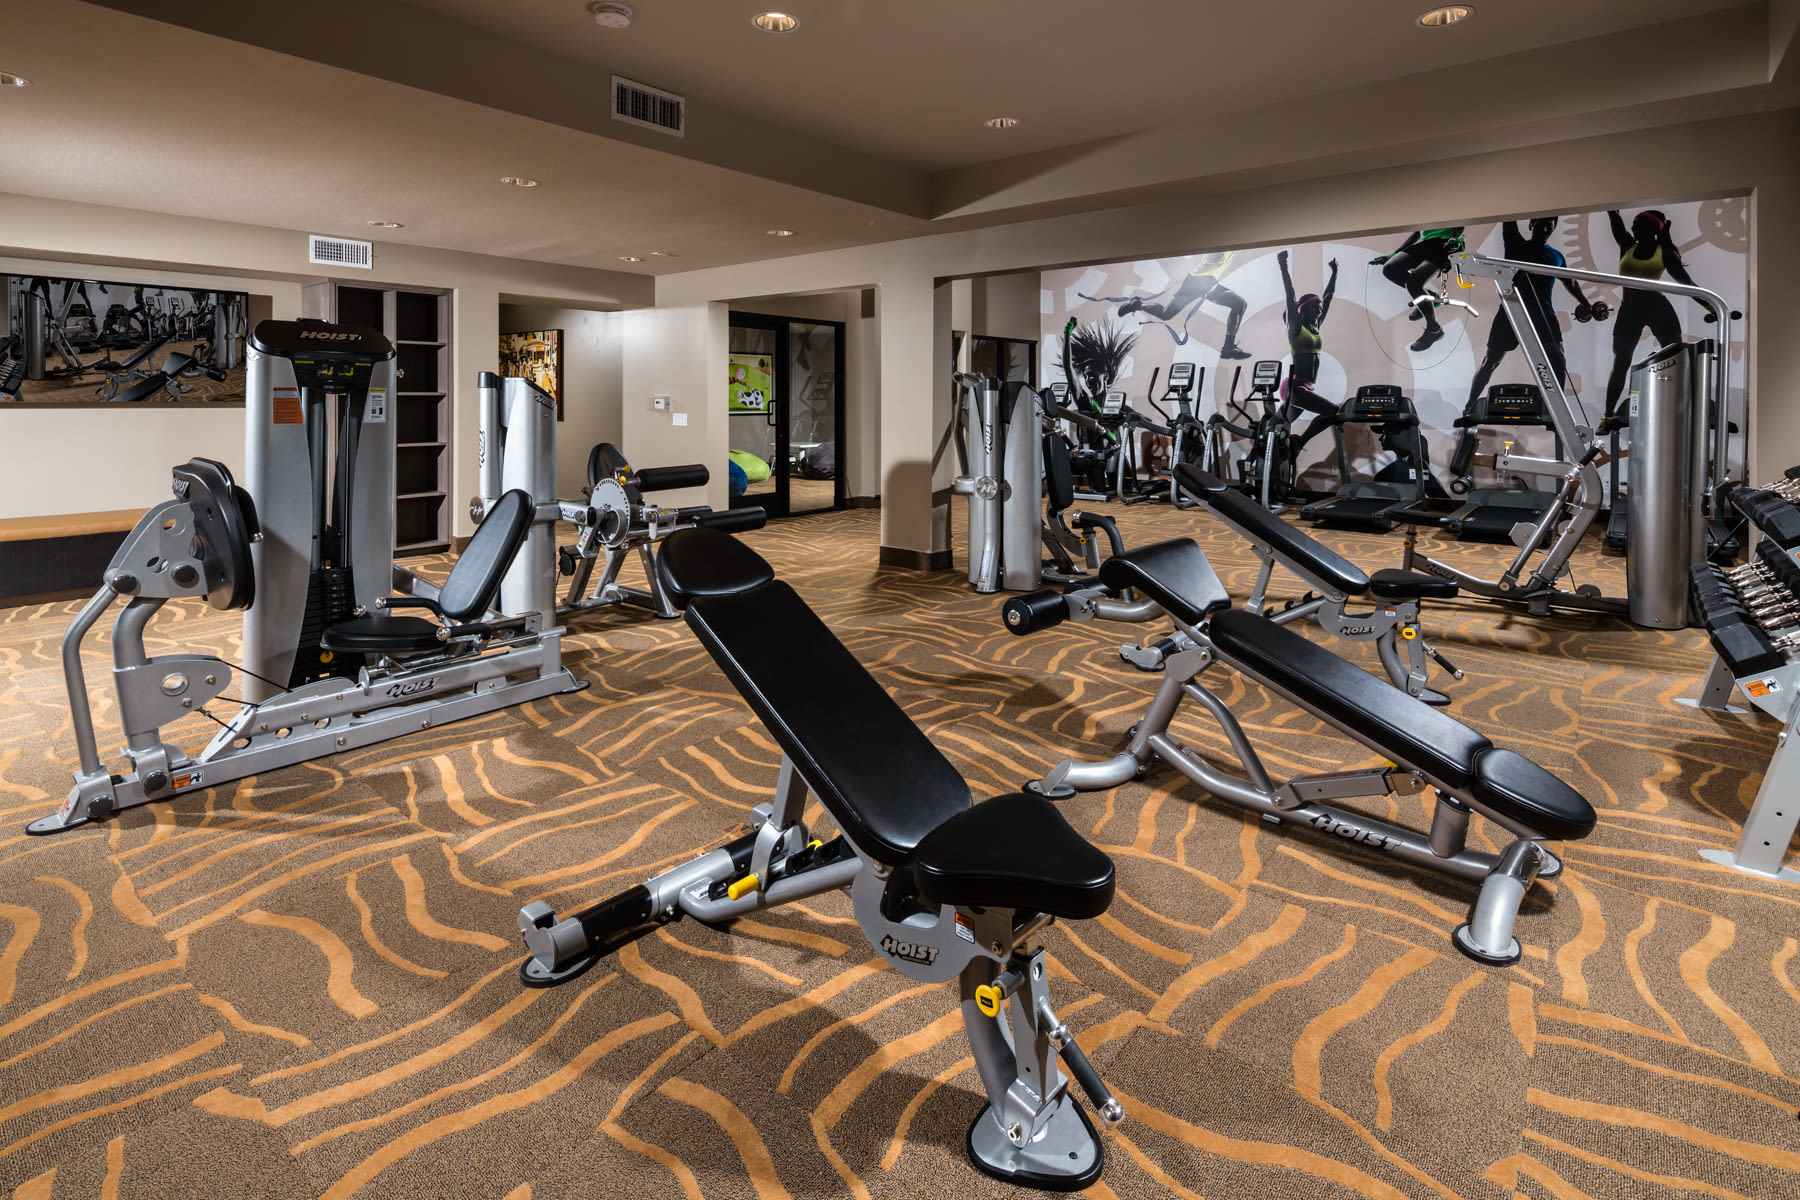 Fitness center at Sierra Heights Apartments in Rancho Cucamonga, California